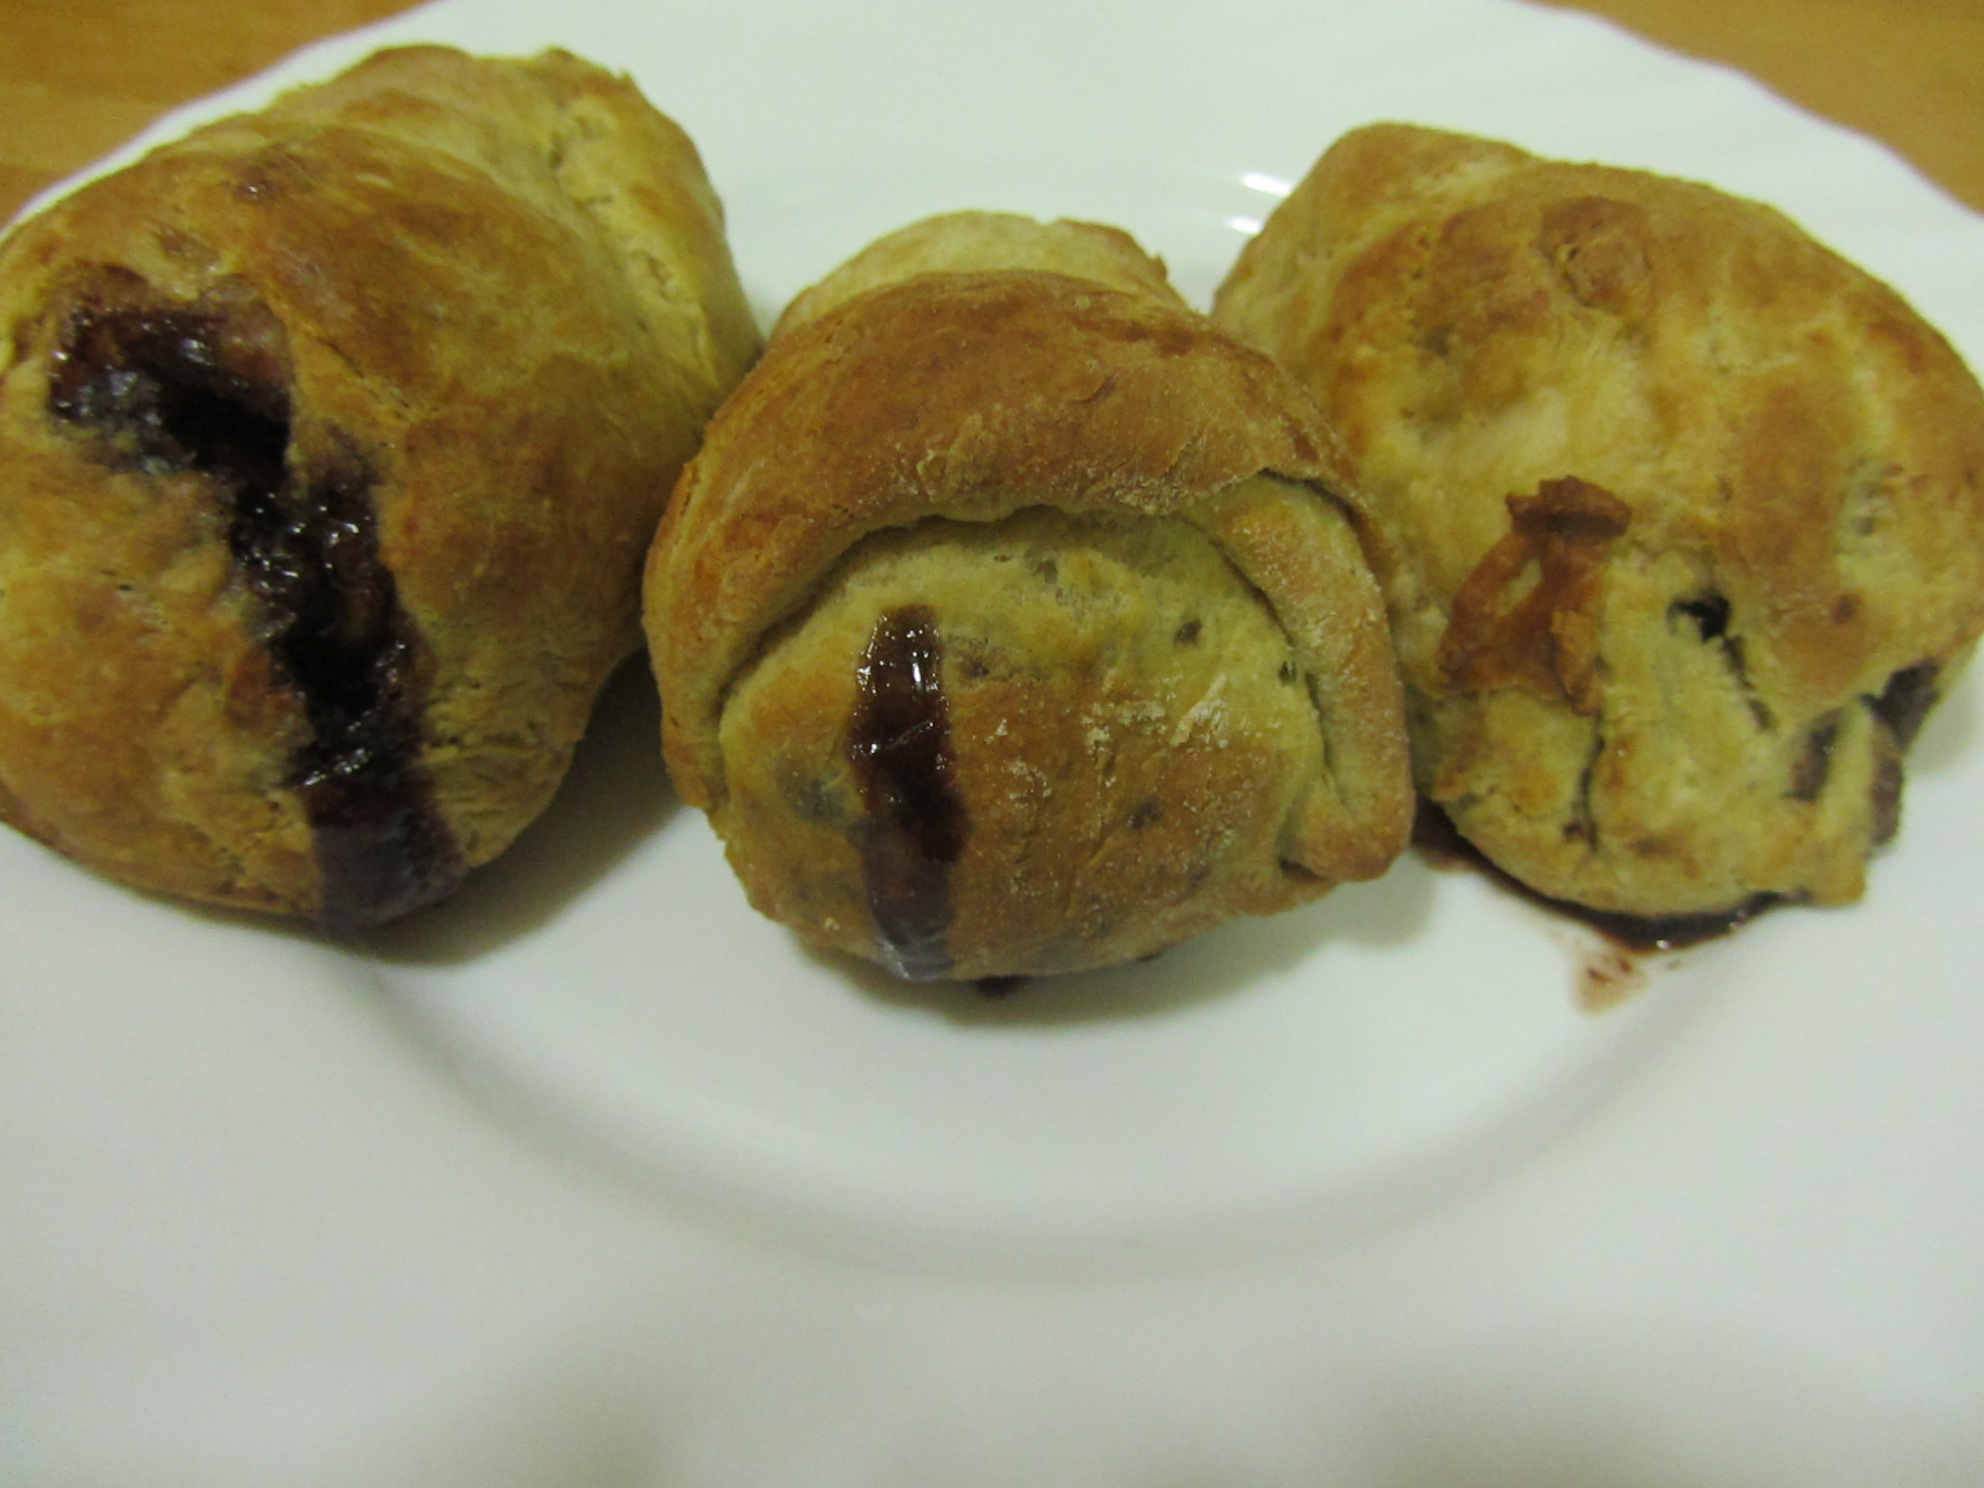 Recipe: Stuffed Pastry Pears